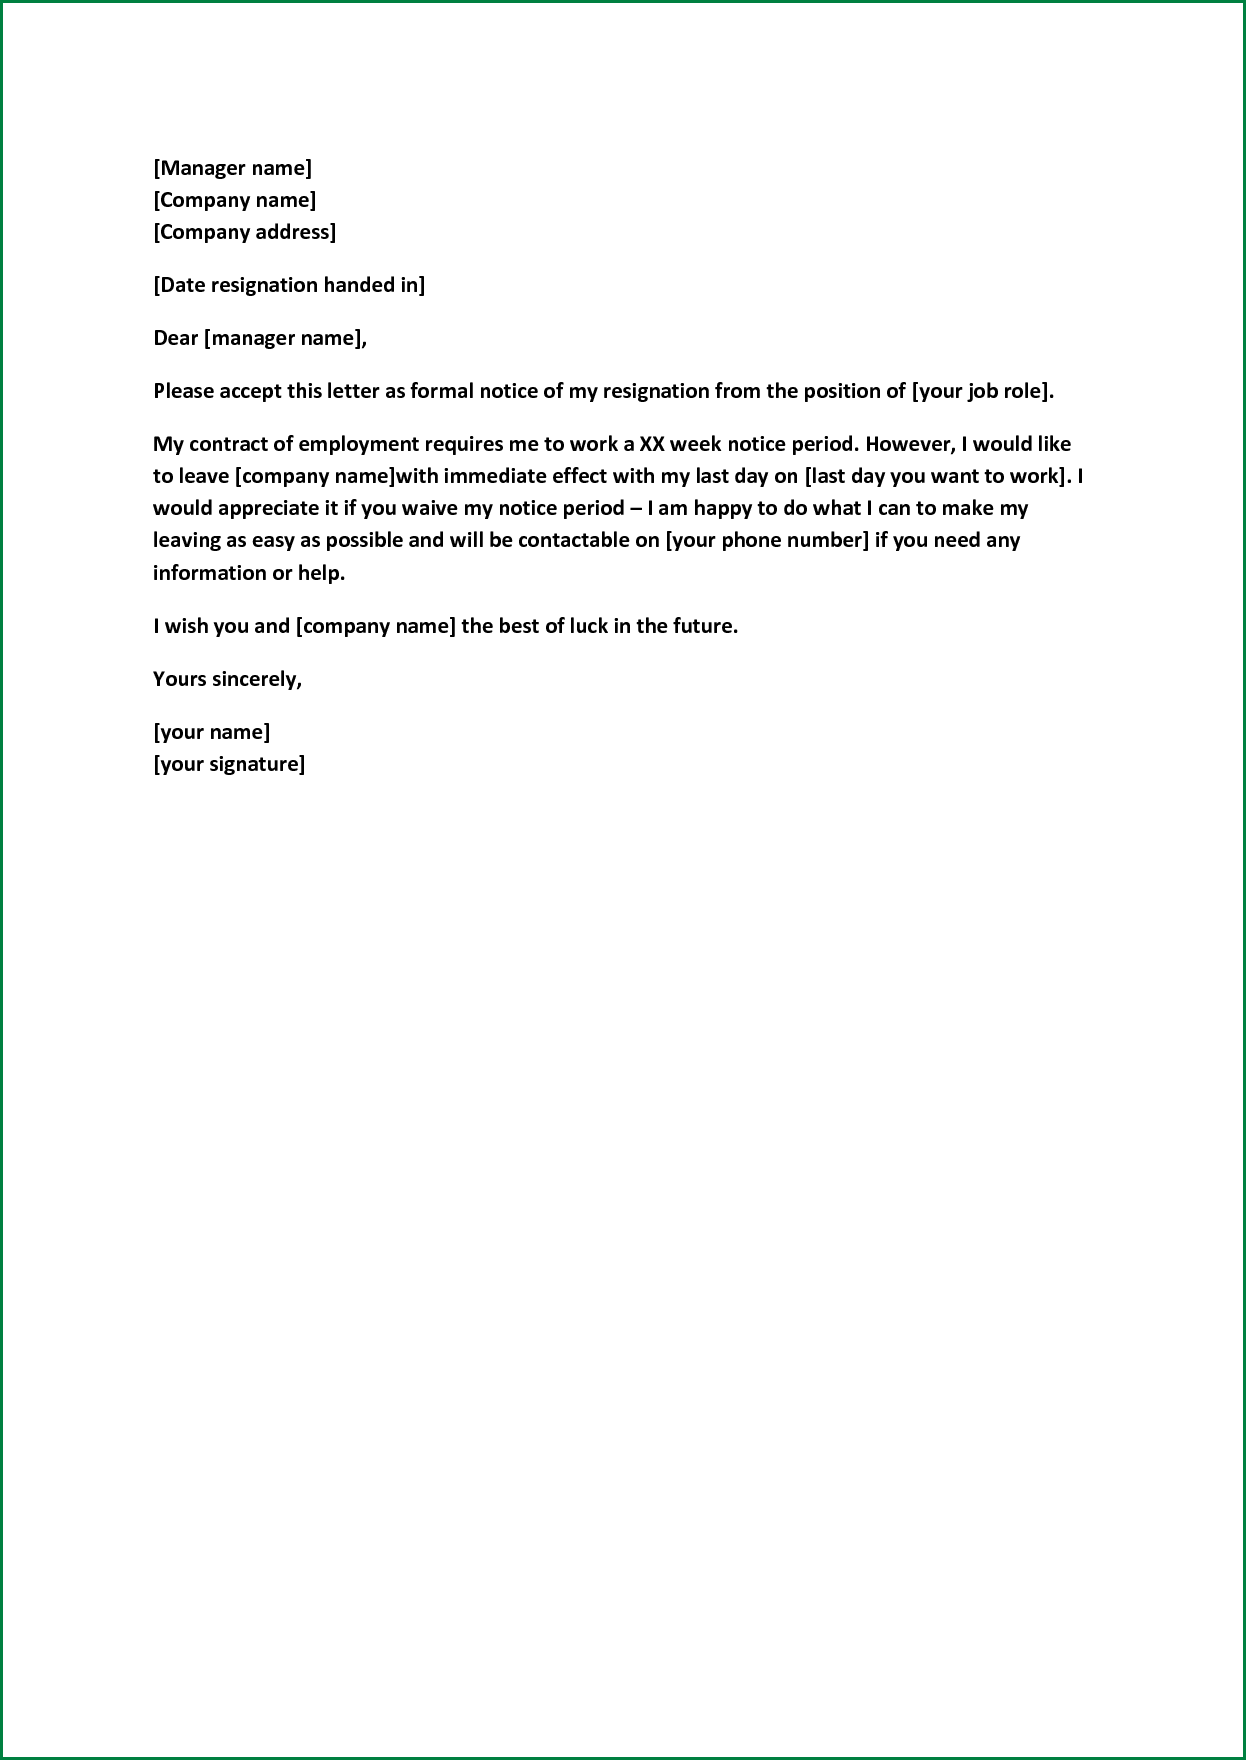 Formal Resignation Letter Sample With Notice Period